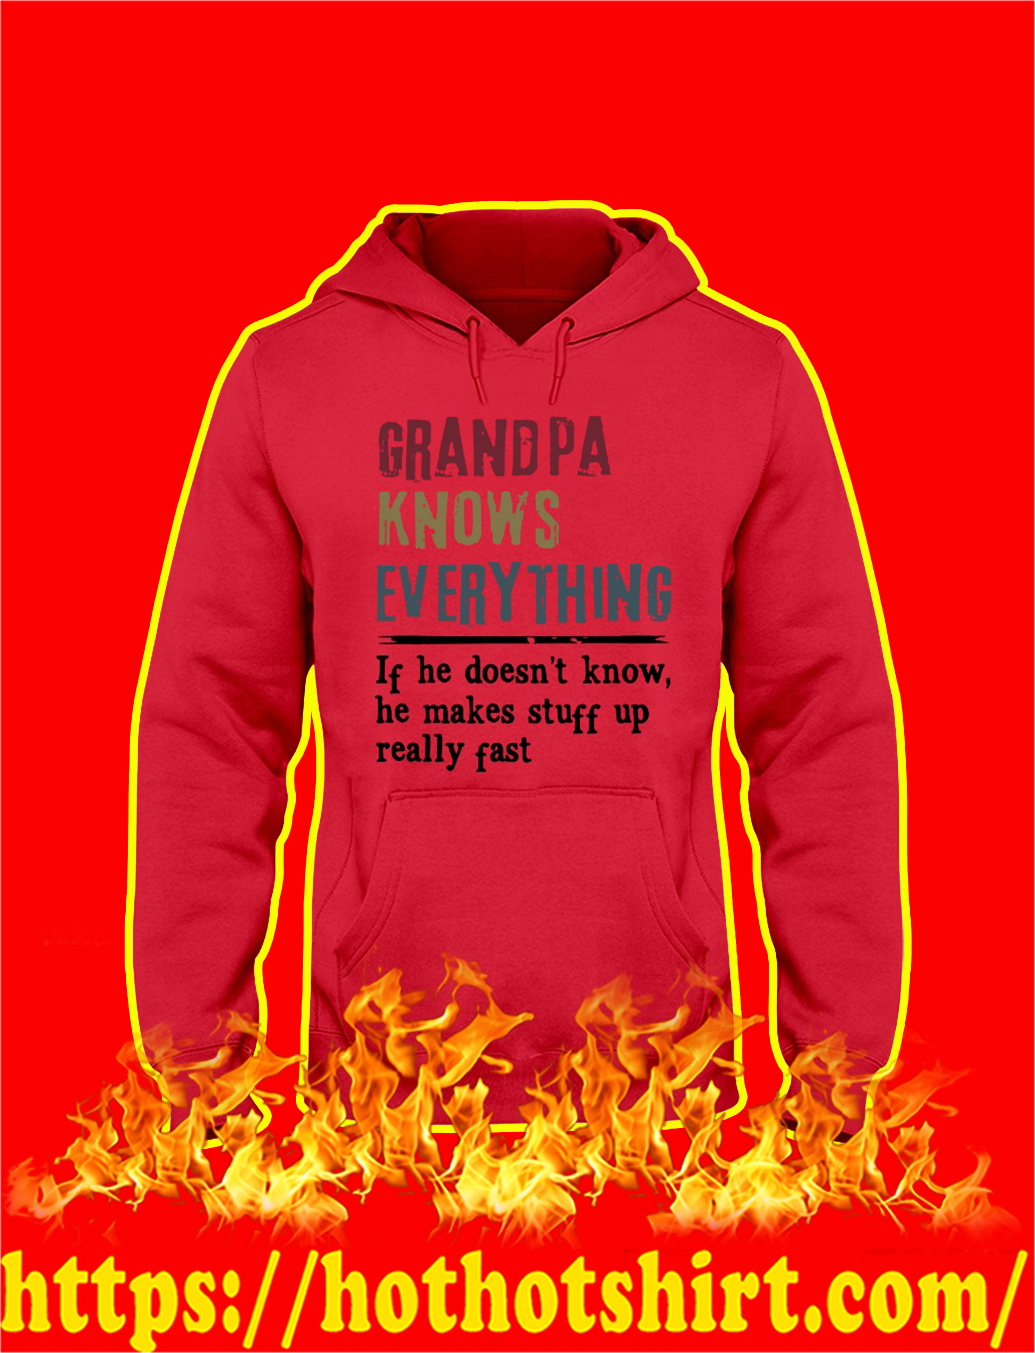 Grandpa Knows Everything If He Doesn't Know He Make Stuff Up Really Fast hoodie